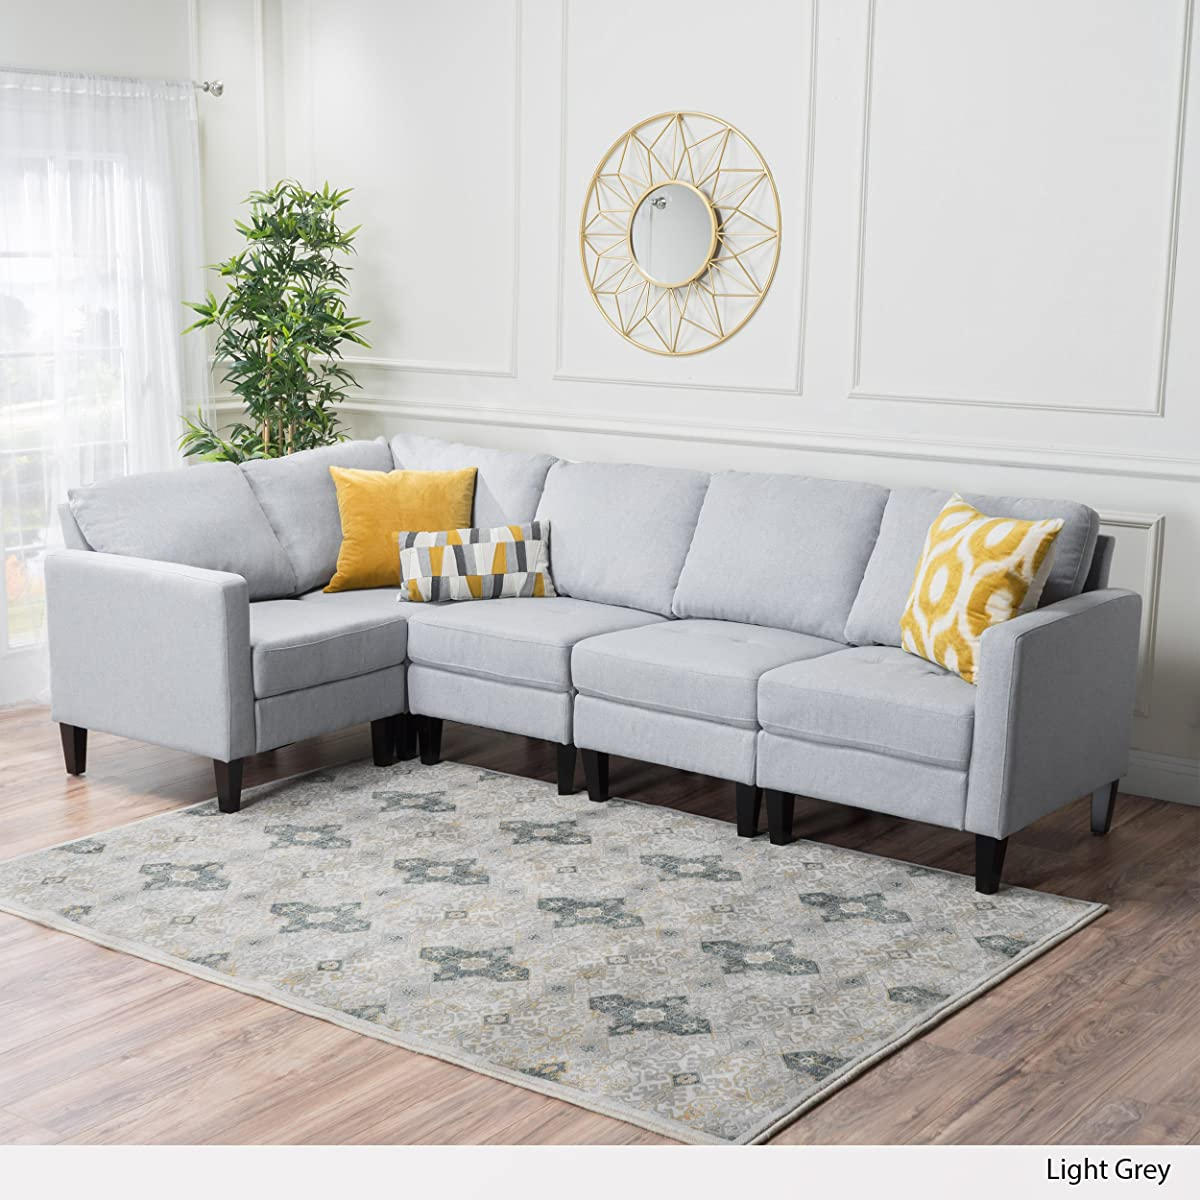 Carolina | Tufted Fabric Sectional Sofa | in Light Grey